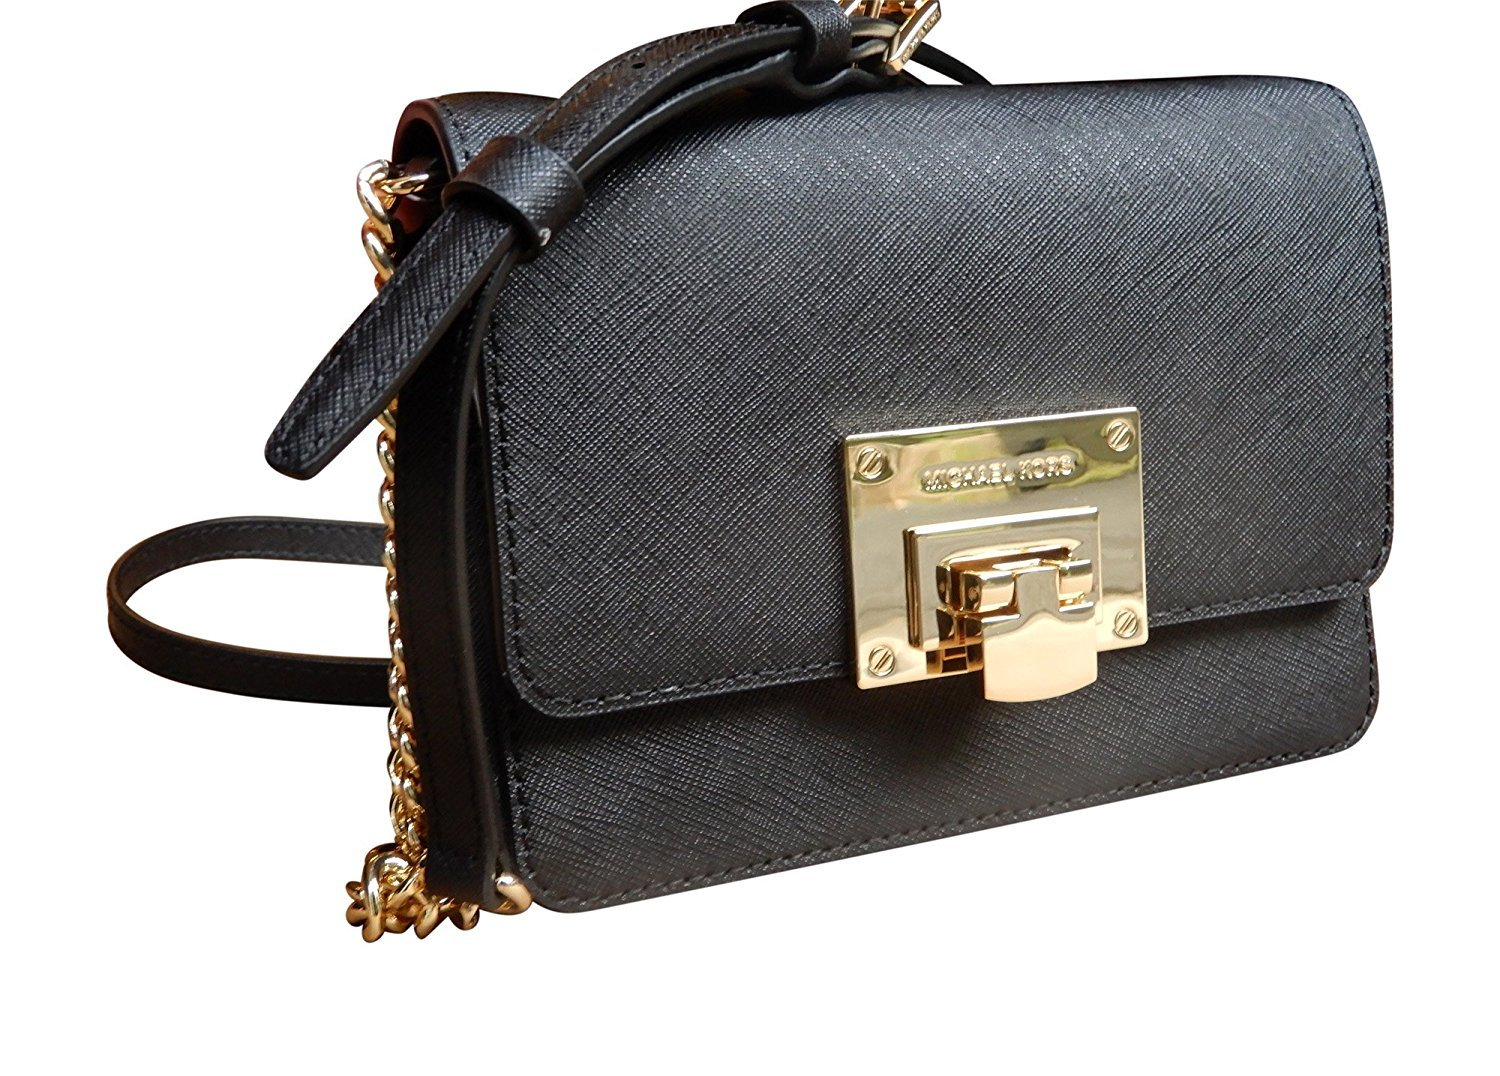 67fc307af2b3 Galleon - Michael Kors Tina Small Leather Clutch, Crossbody Shoulder Bag,  Black